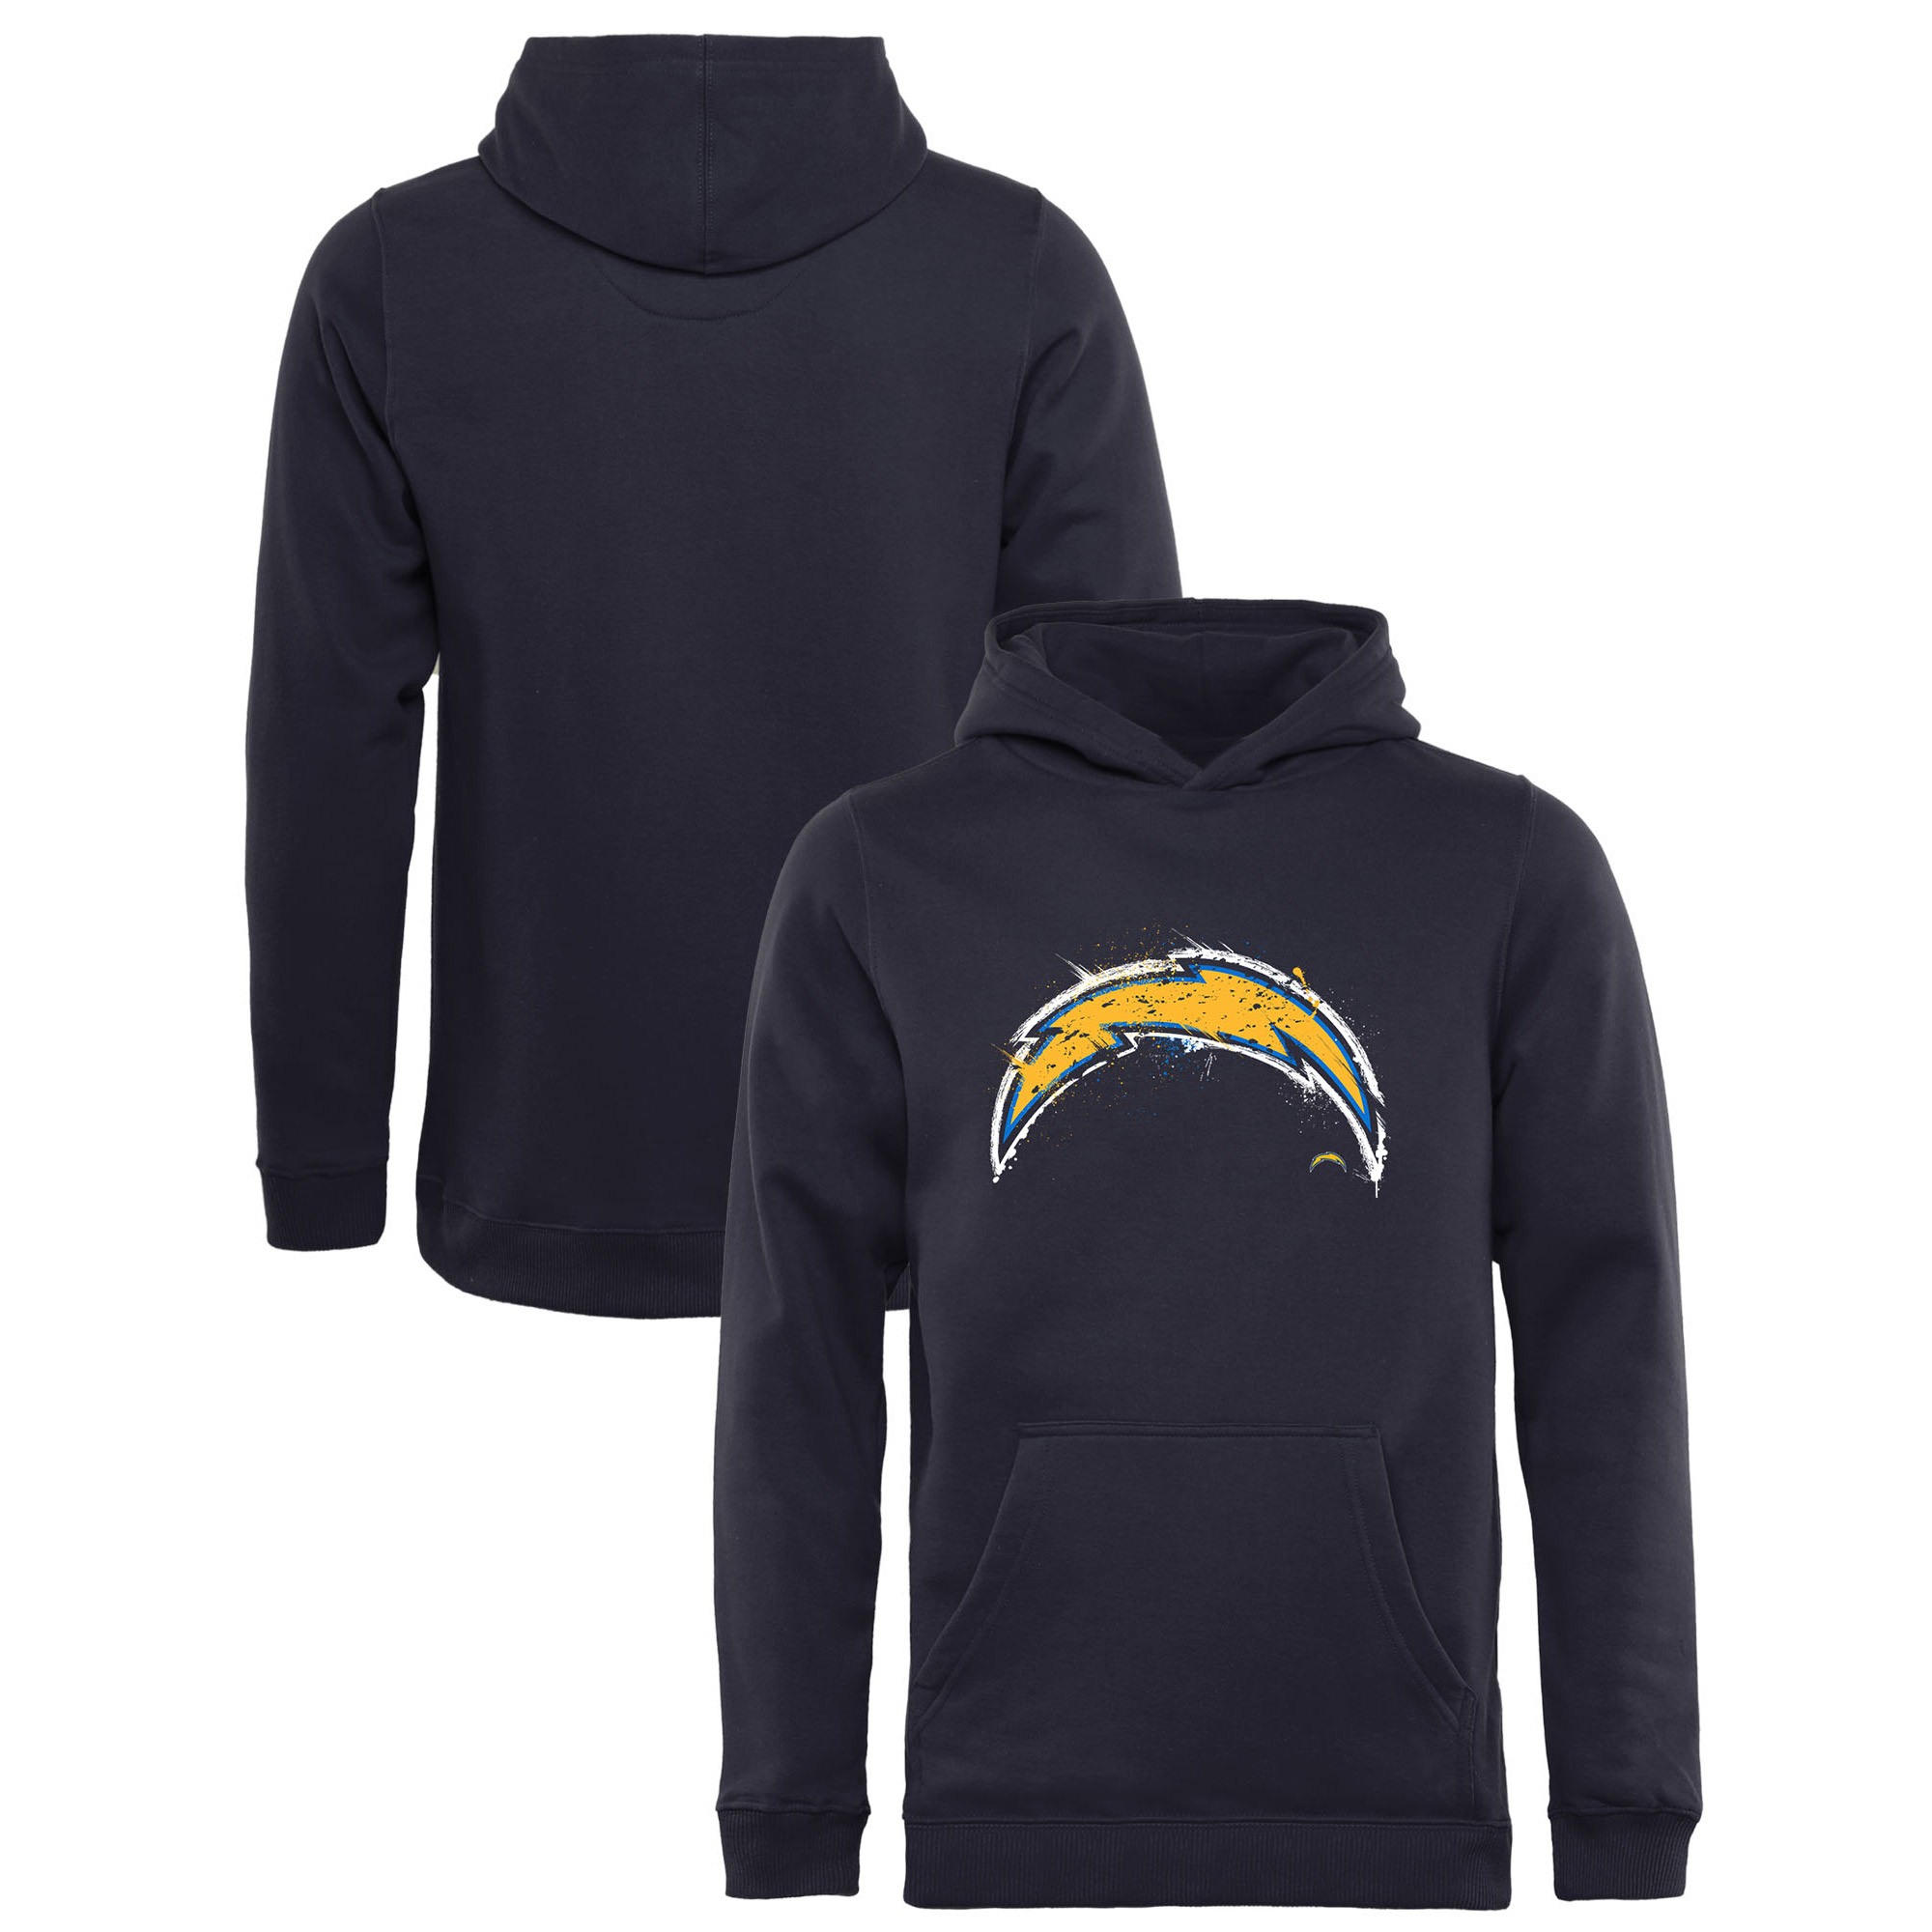 Los Angeles Chargers NFL Pro Line by Fanatics Branded Youth Splatter Logo Pullover Hoodie - Navy